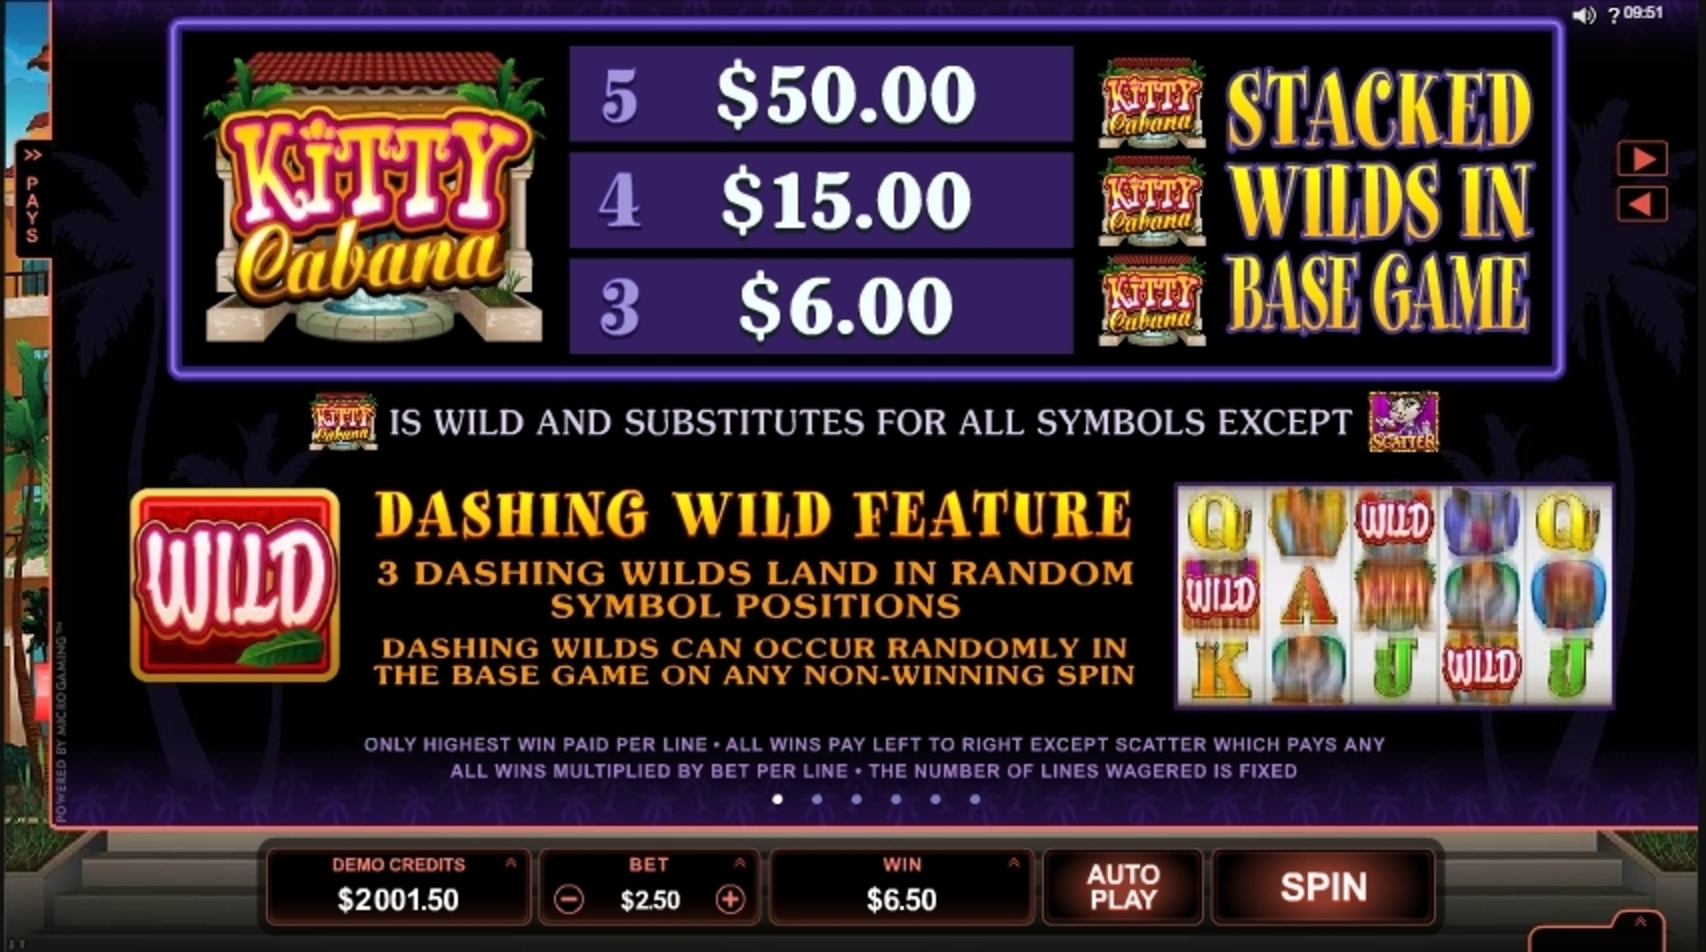 Info of Kitty Cabana Slot Game by Microgaming